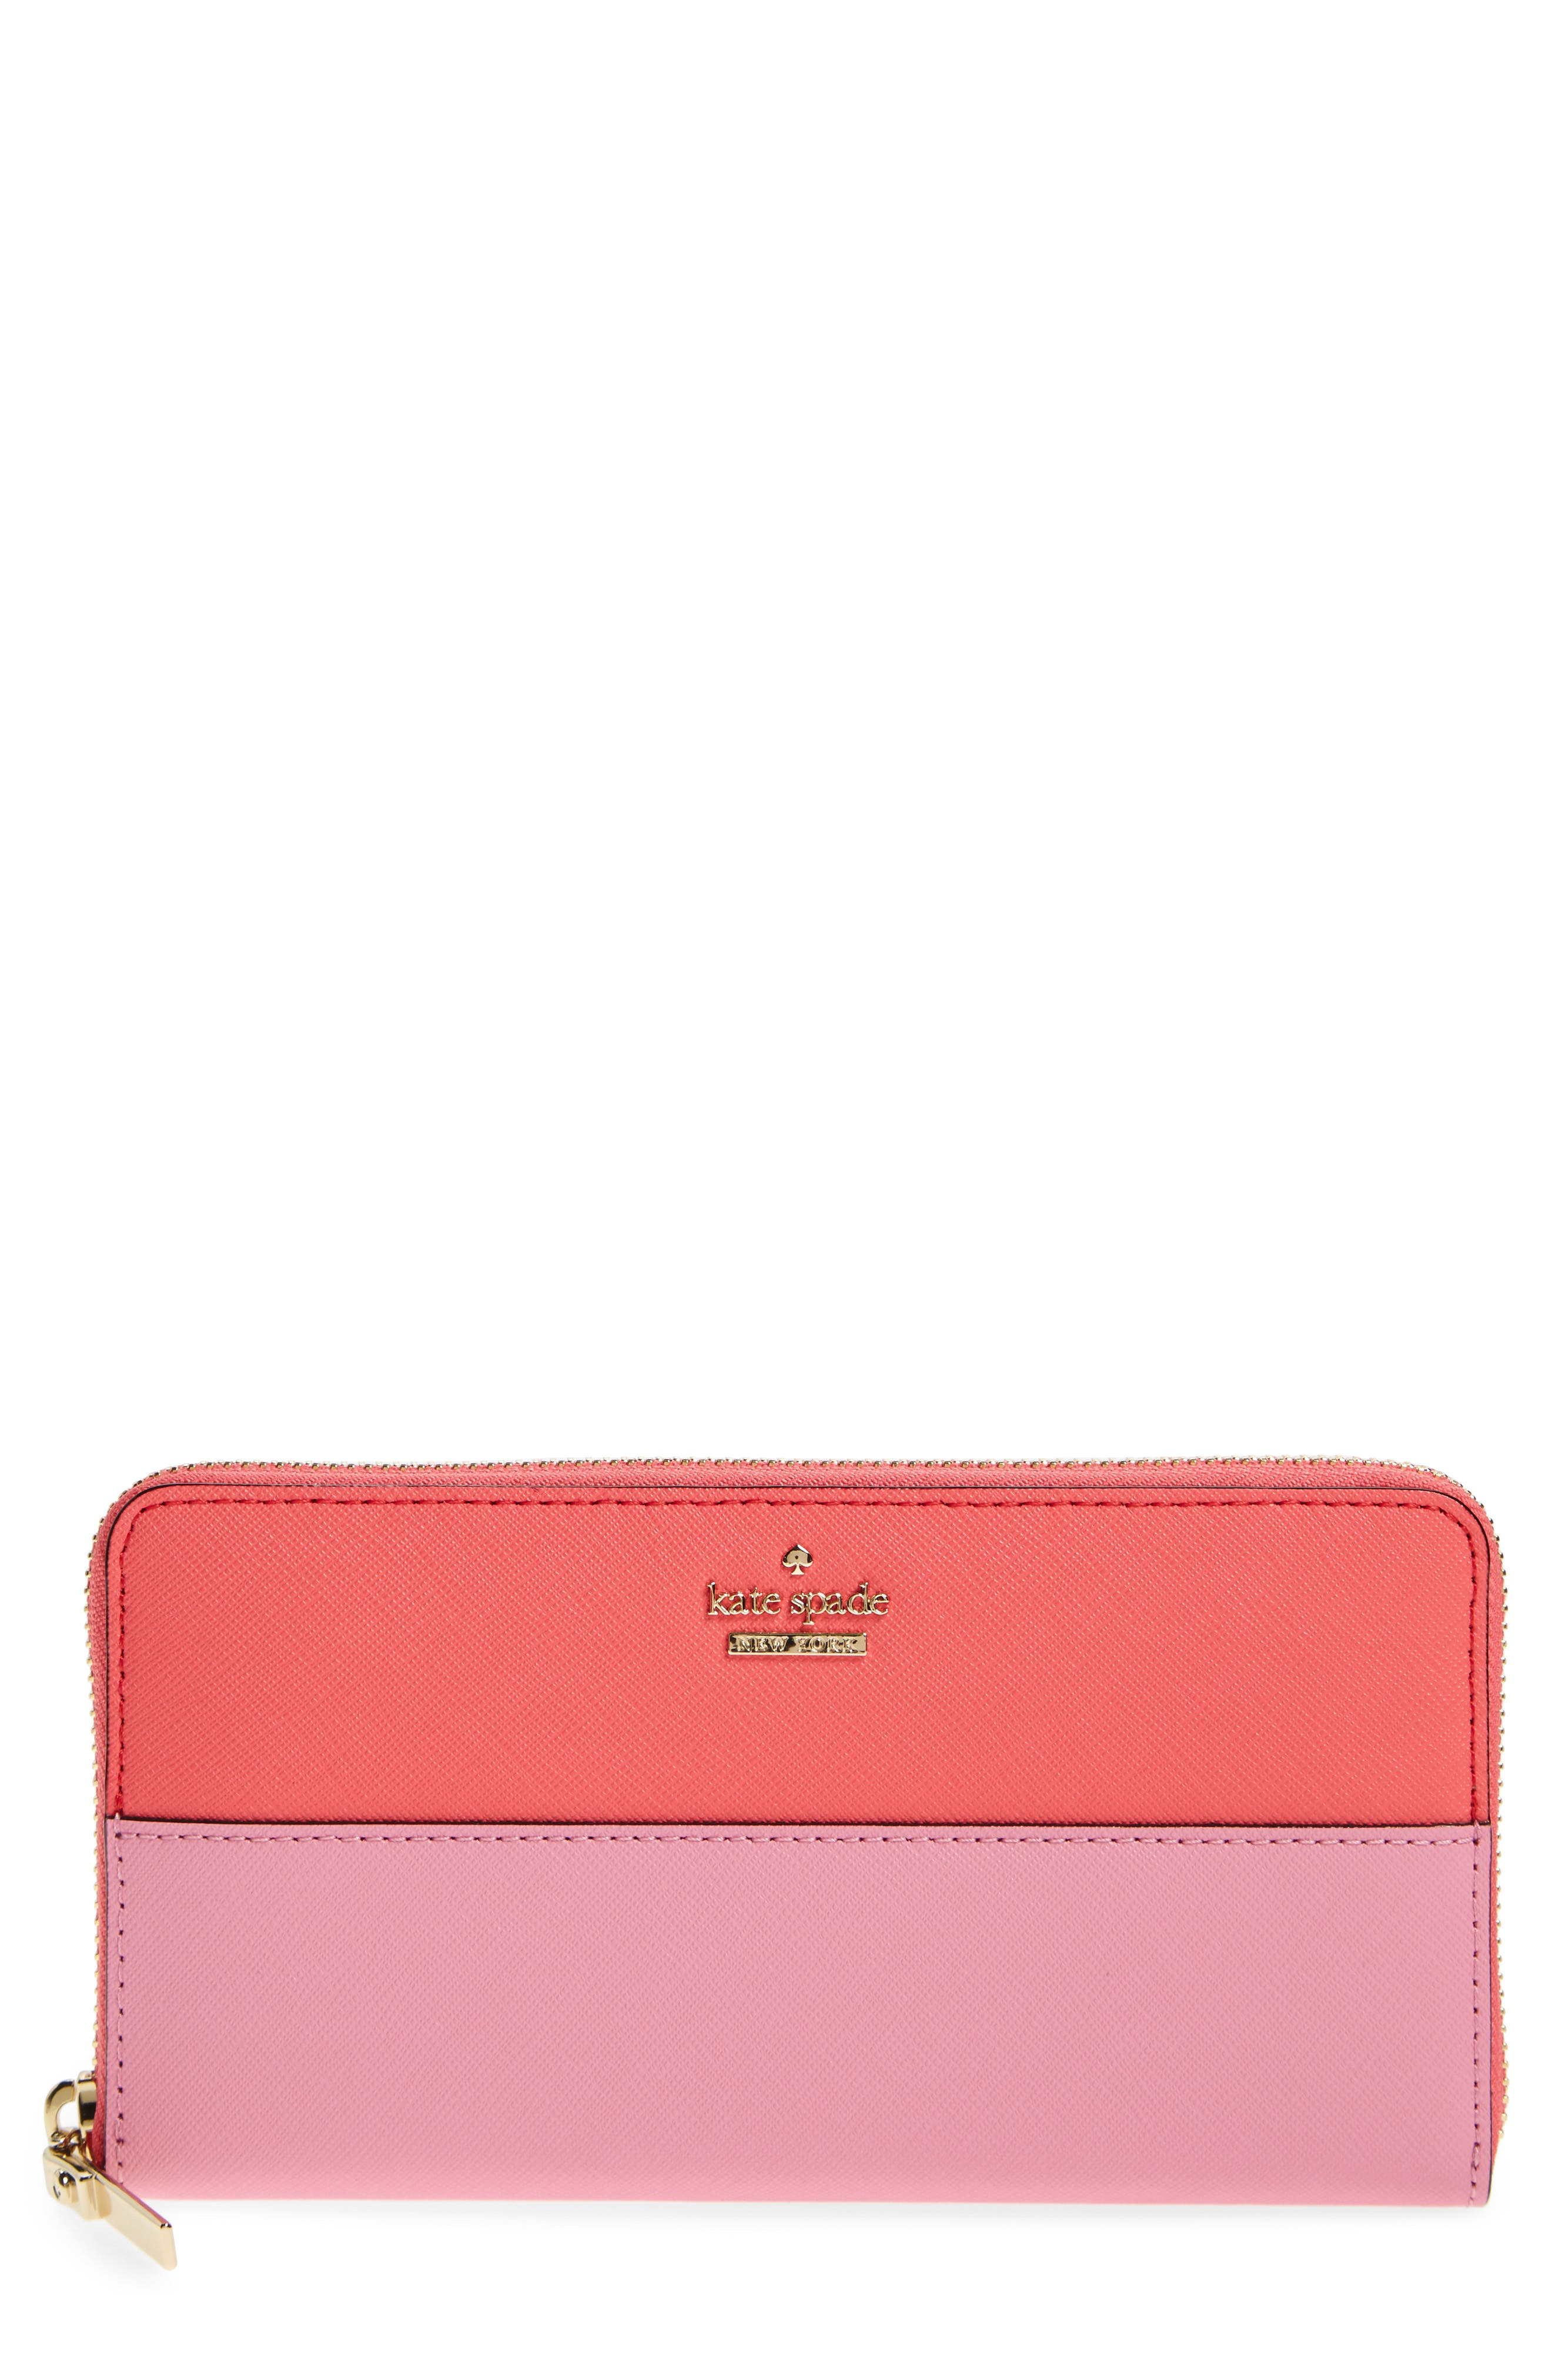 'cameron street - lacey' leather wallet,                             Main thumbnail 8, color,